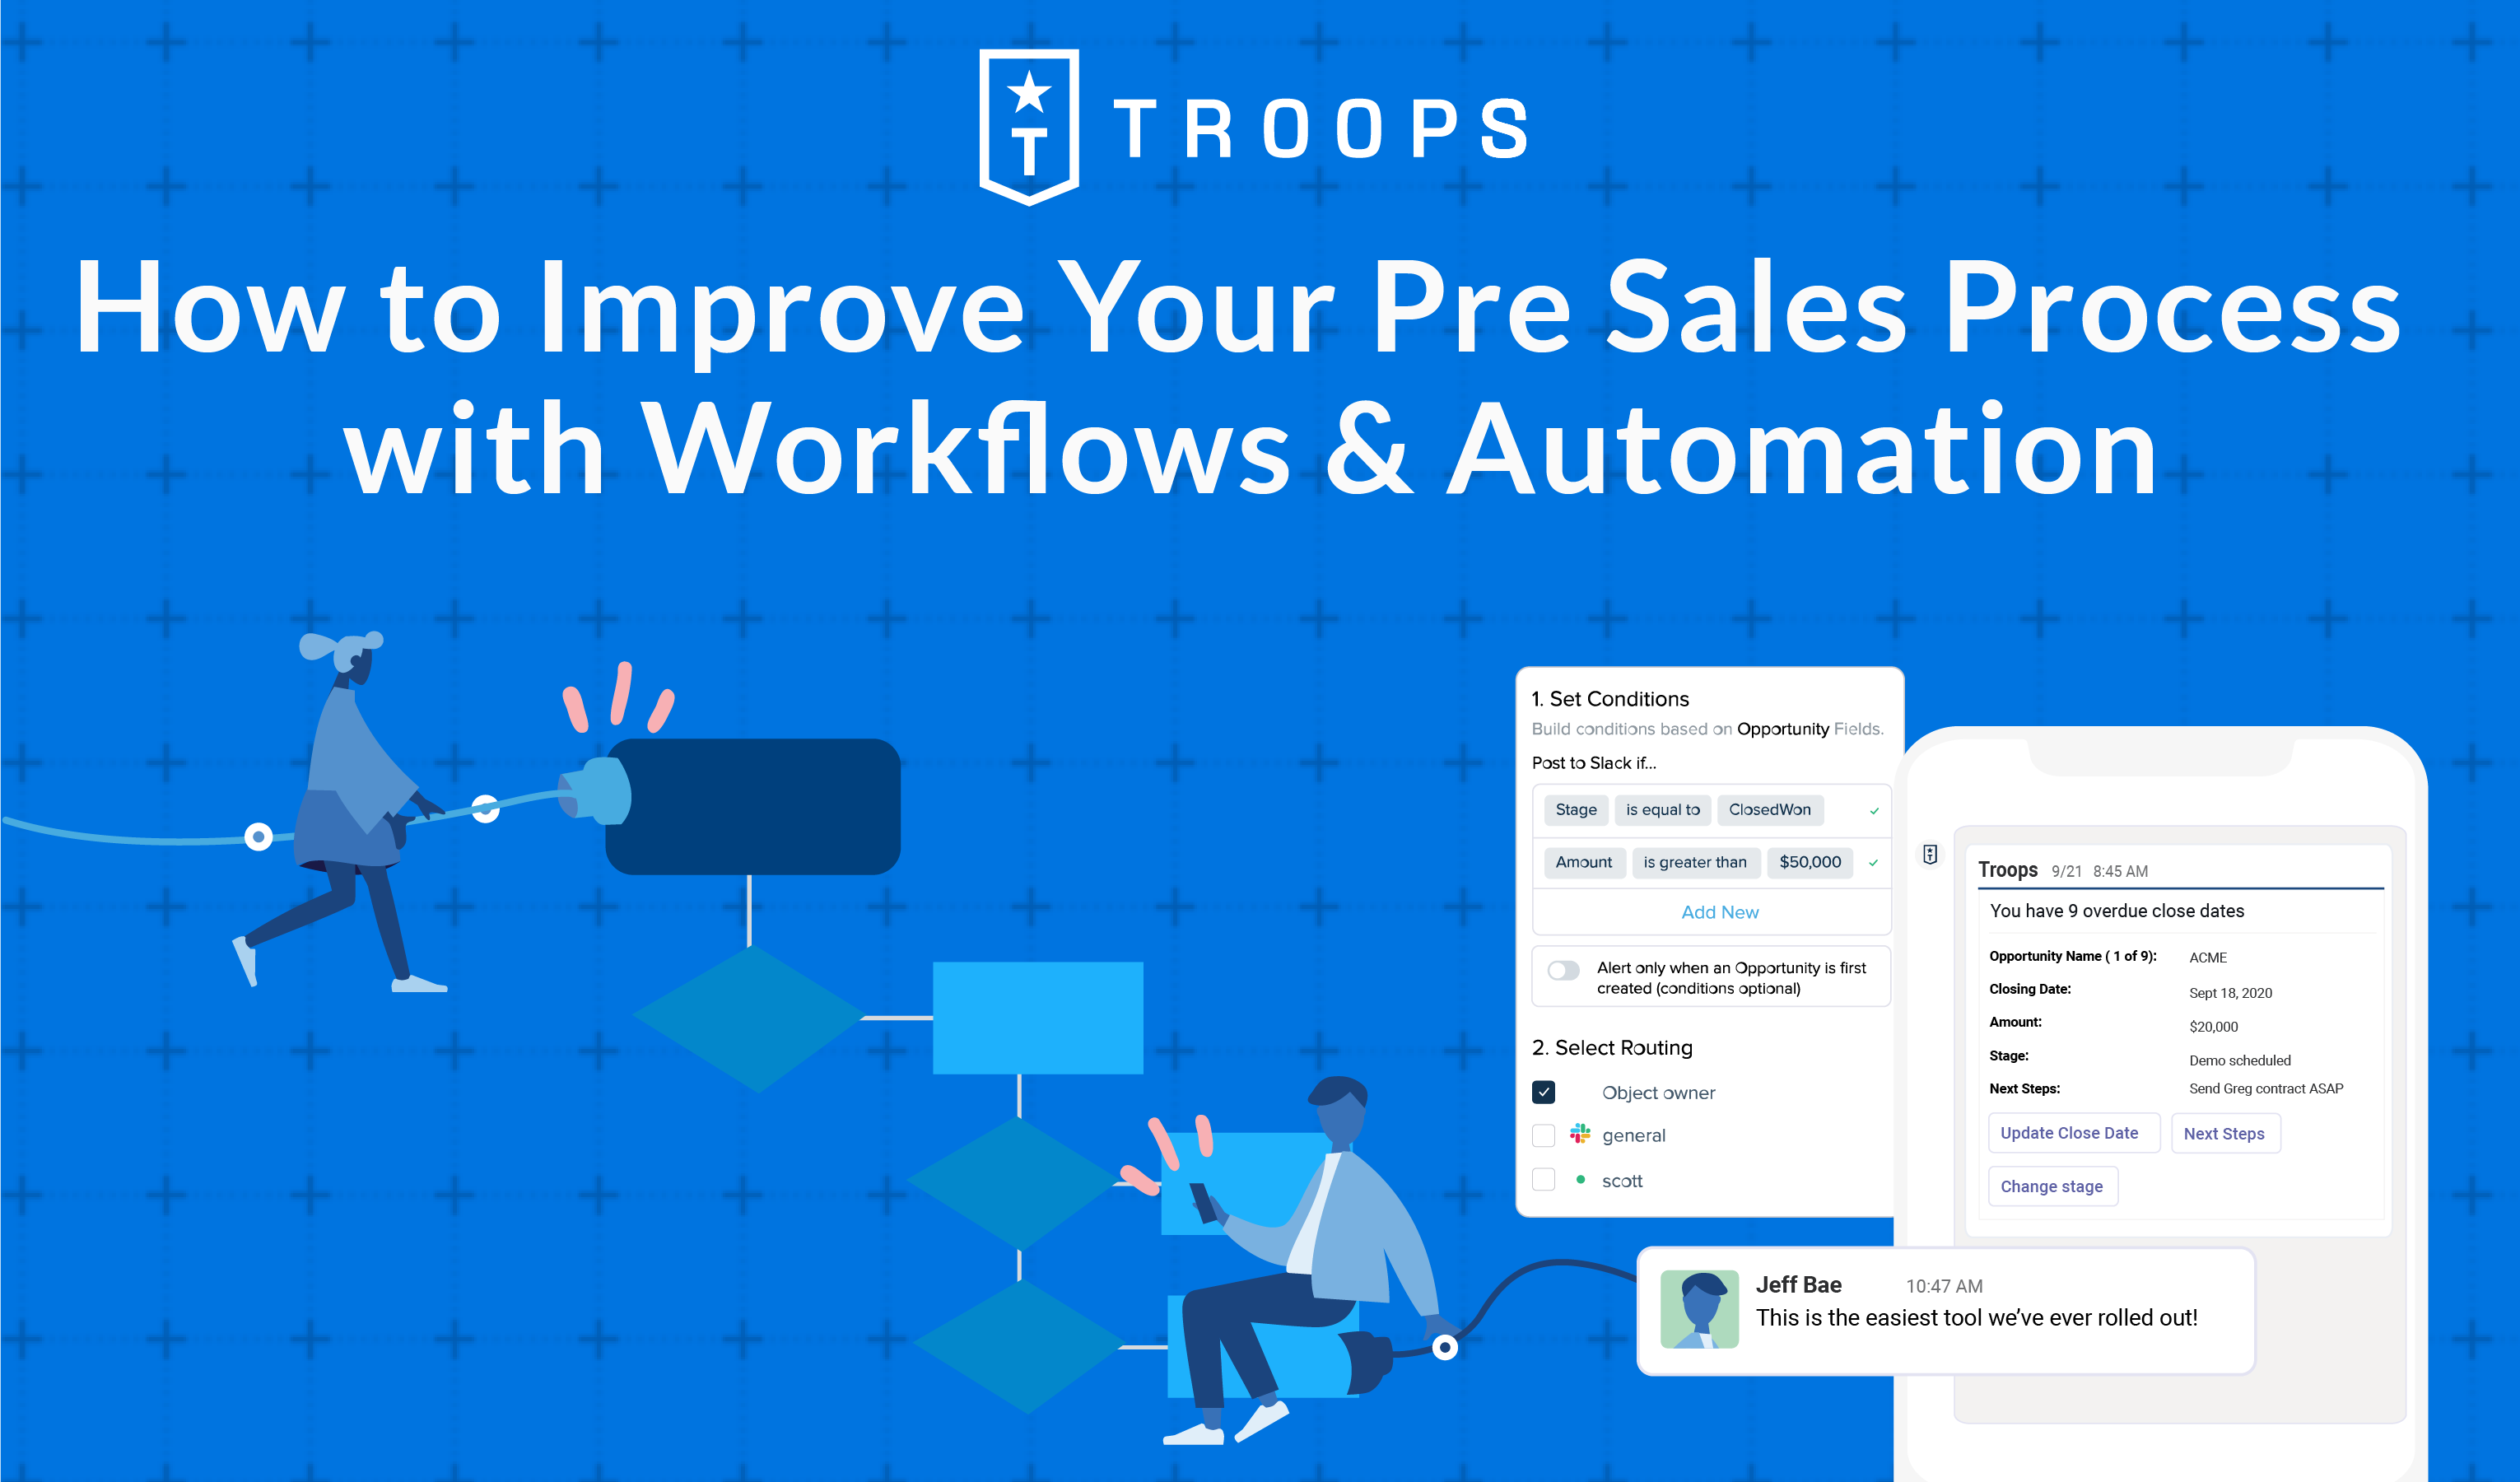 How to Improve Your Pre Sales Process with Workflows & Automation